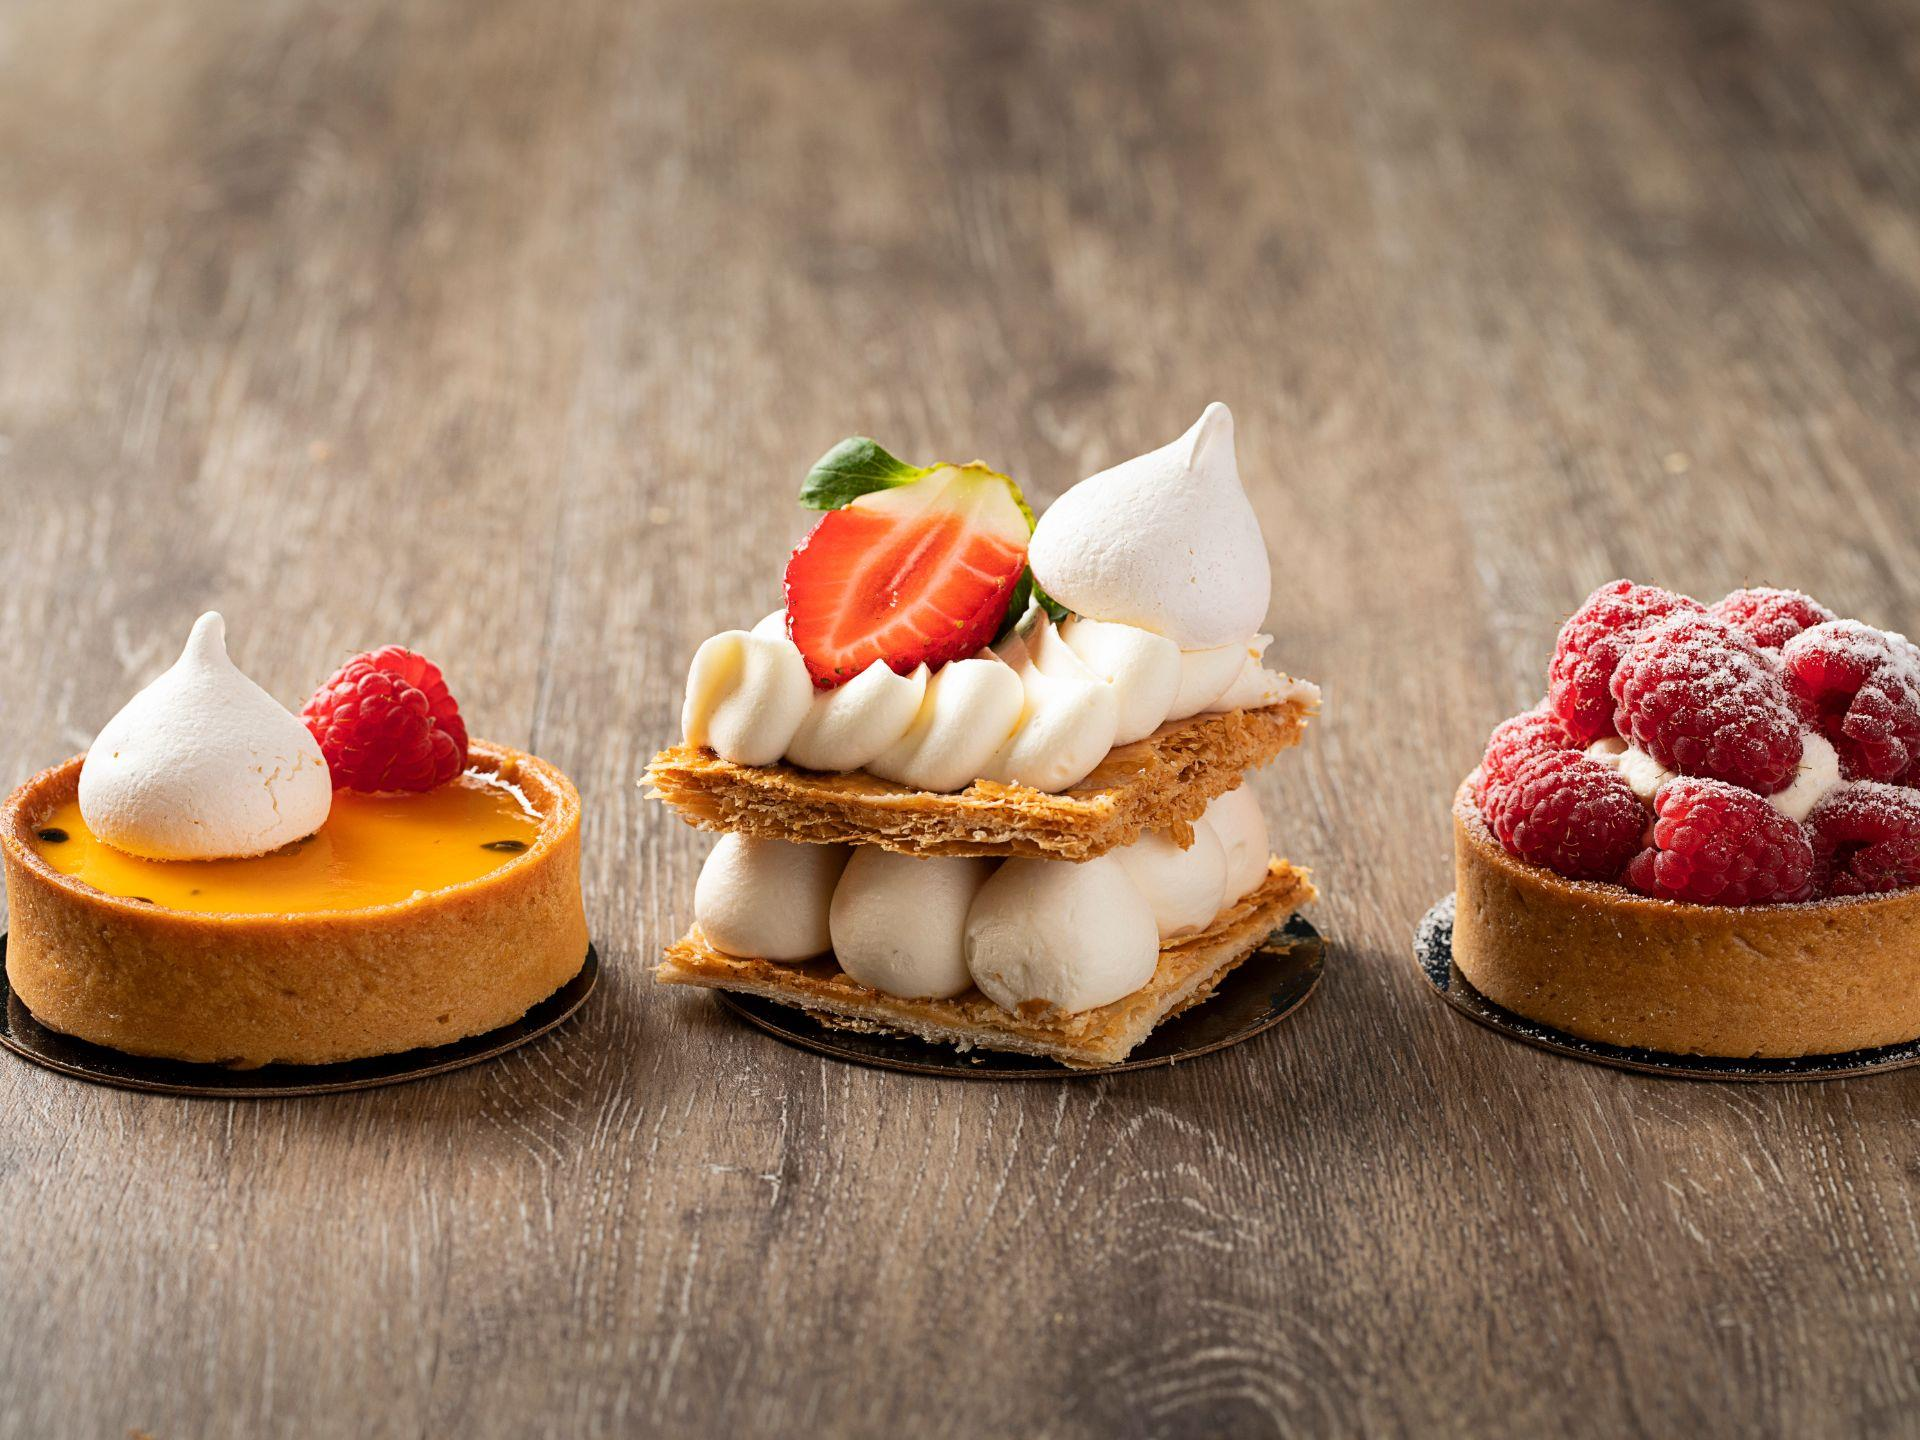 Three assorted pastries arranged on a wood table